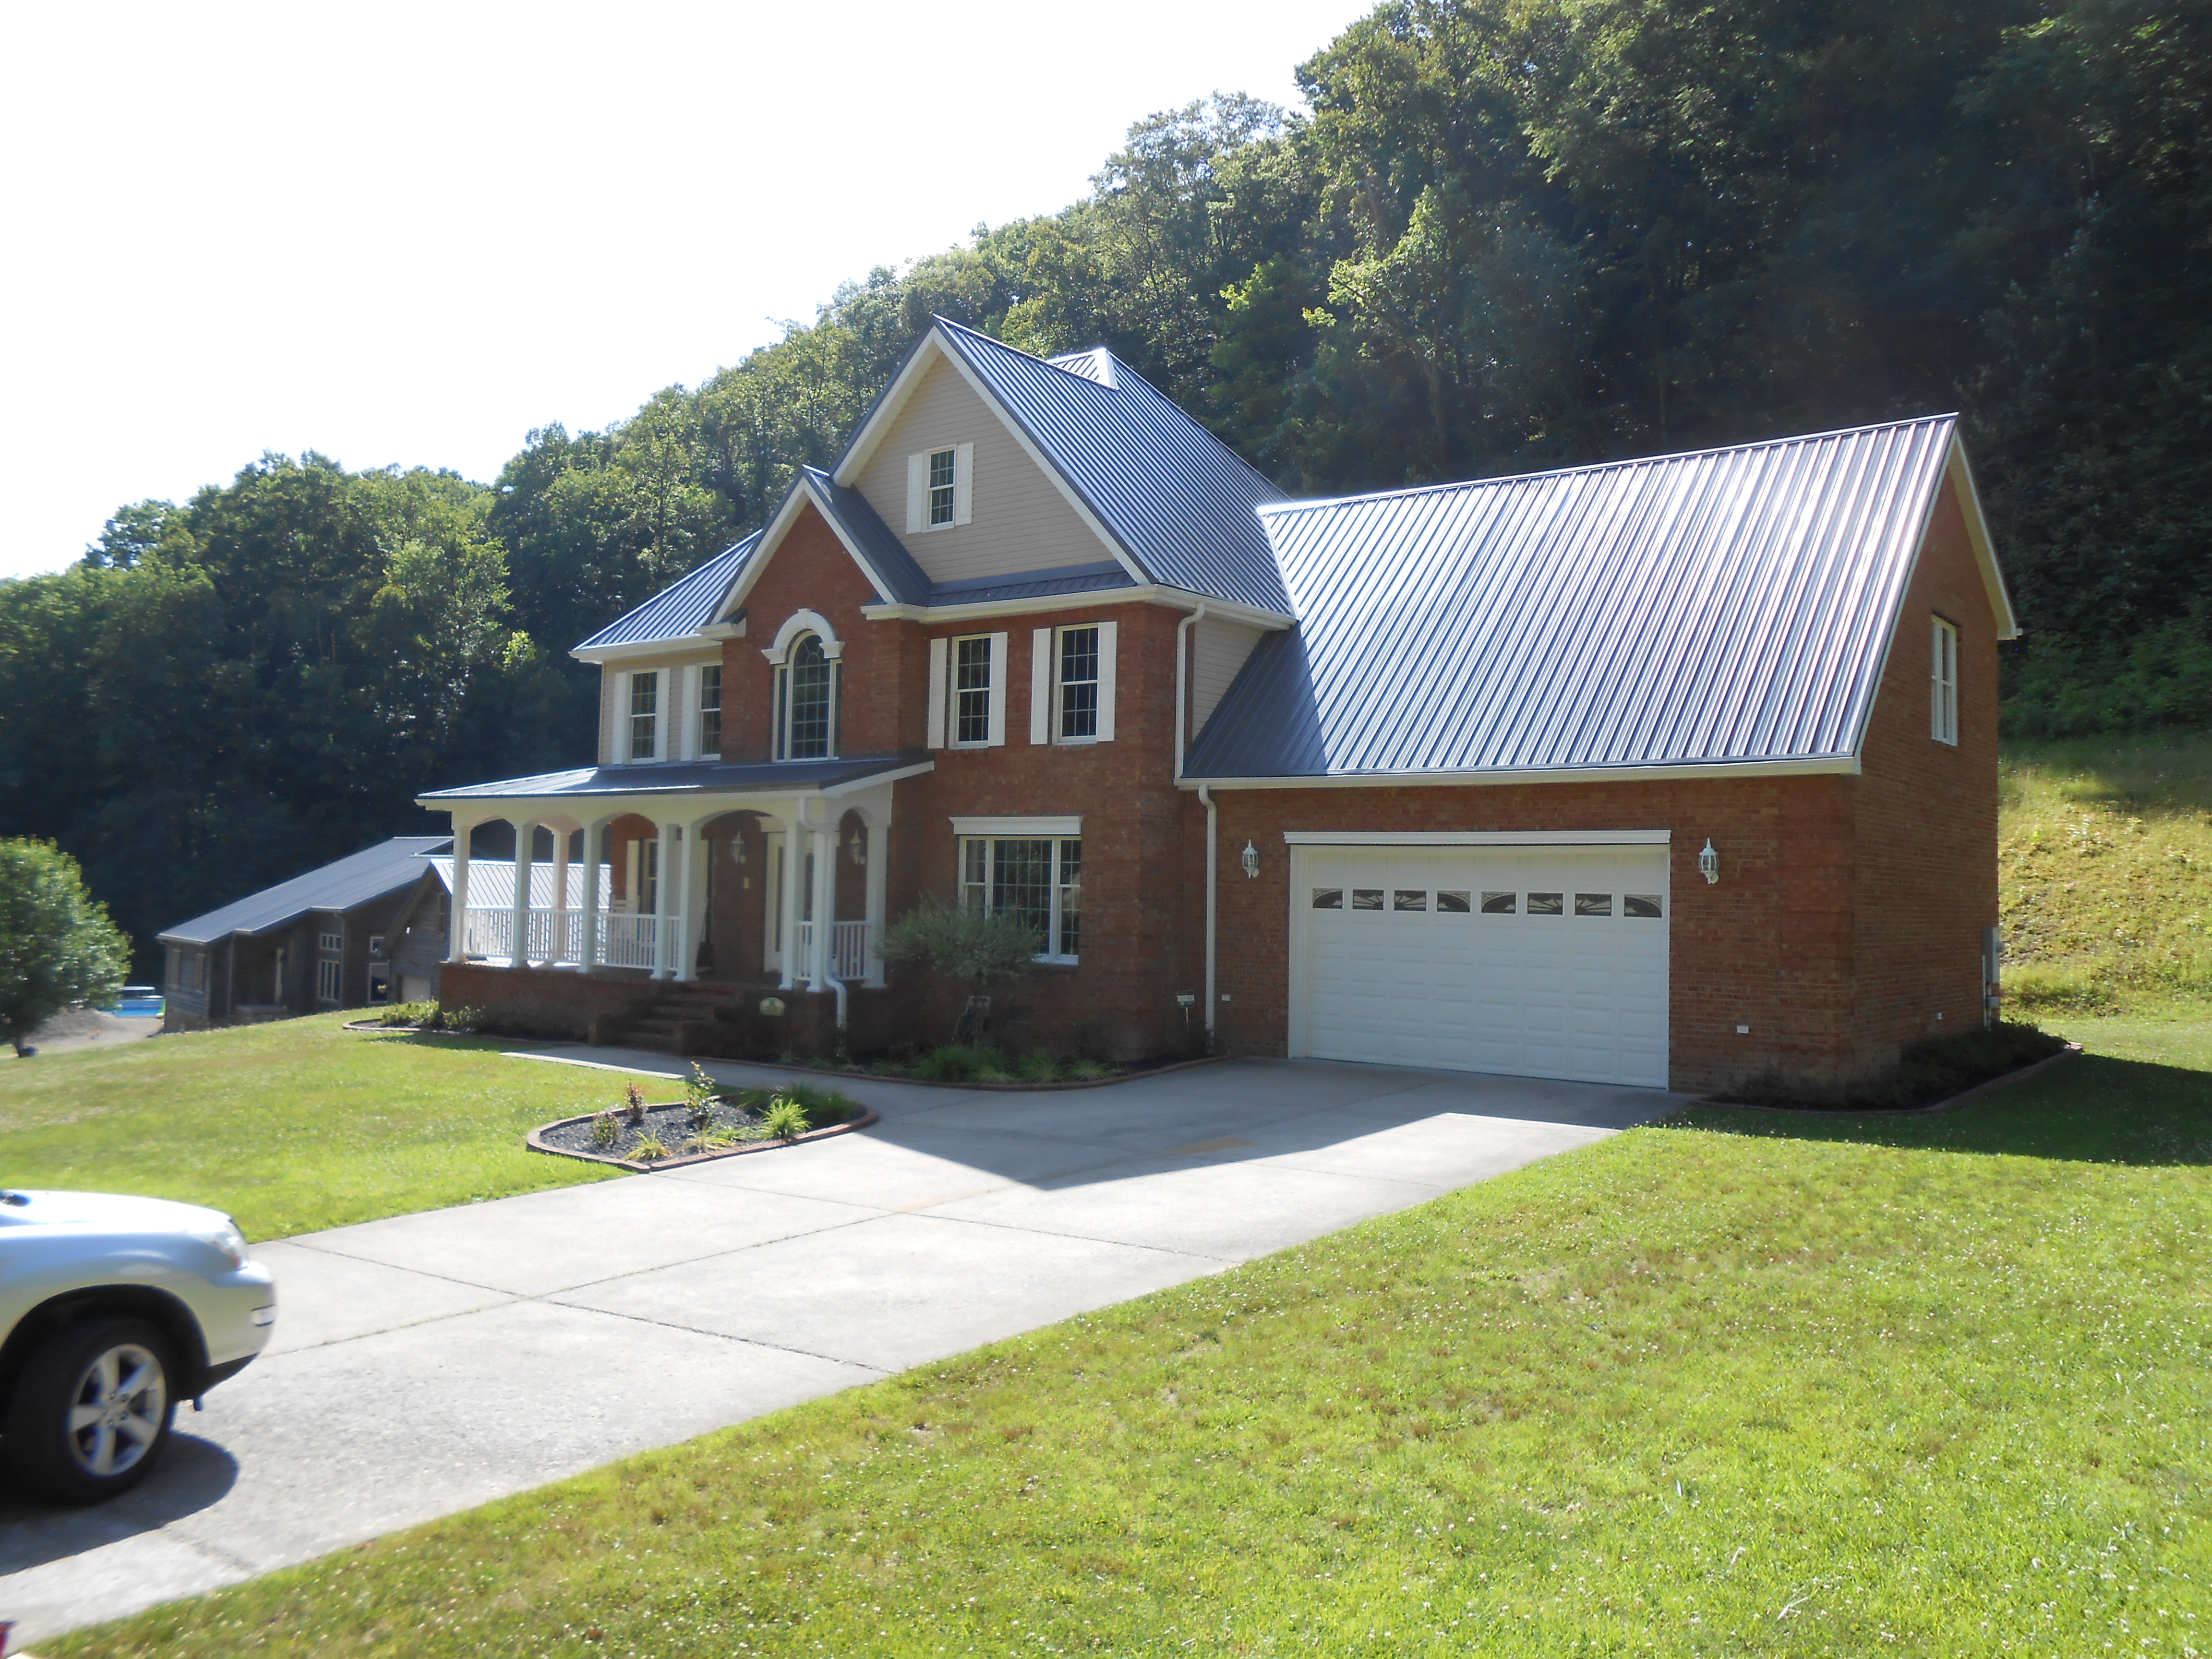 225 Tomahawk Trail/151 Brookside Meadows, Chapmanville, West Virginia 25508